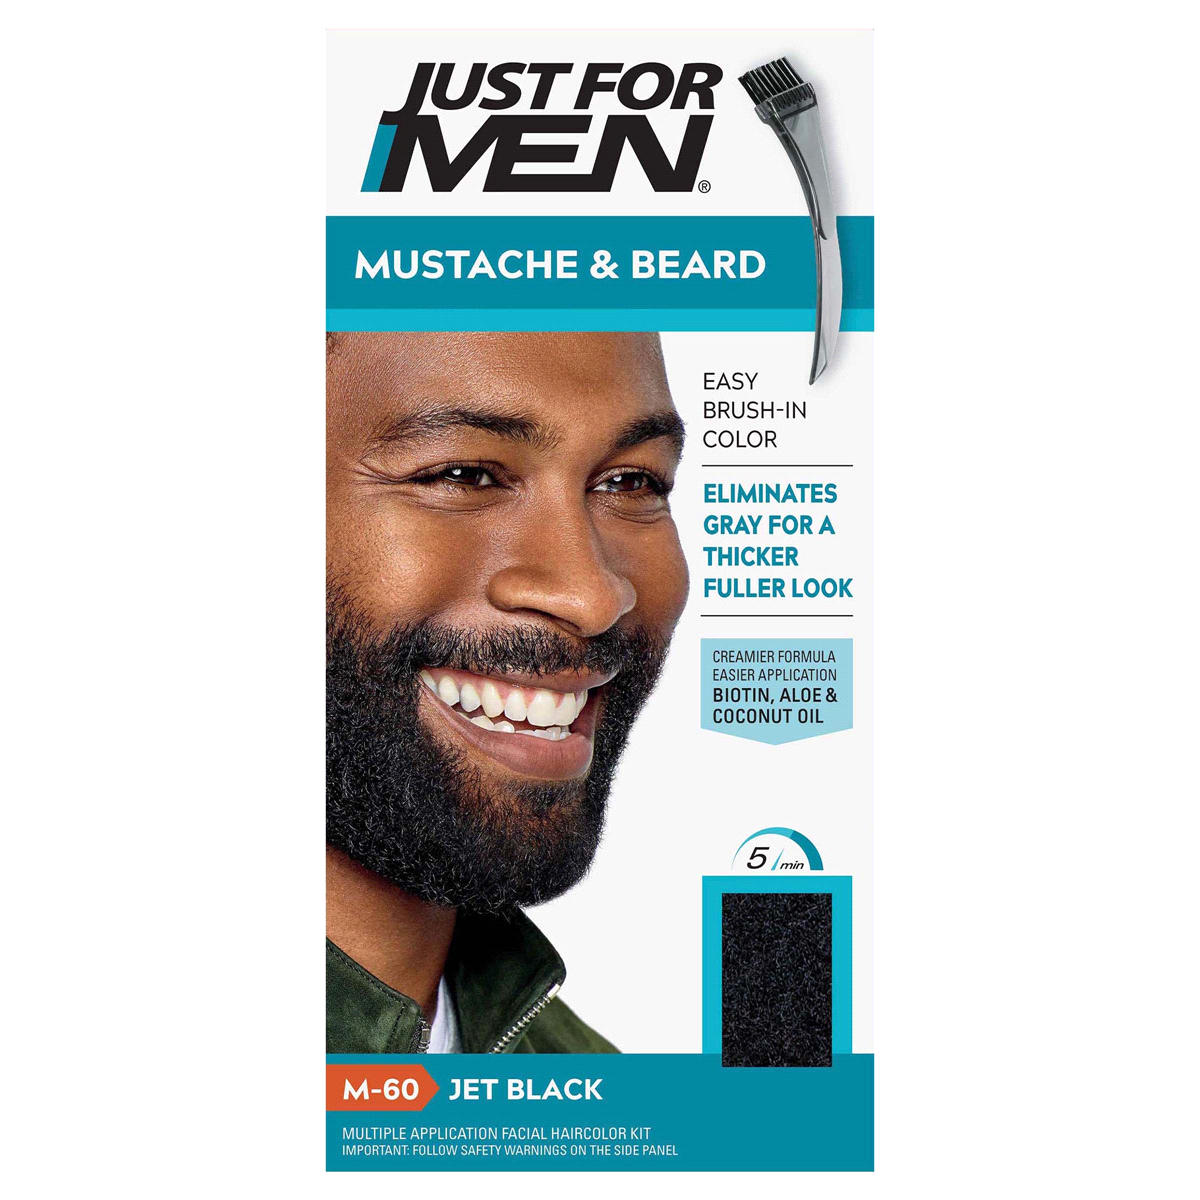 Just For Men Mustache & Beard Color Jet Black M-60: $7.99